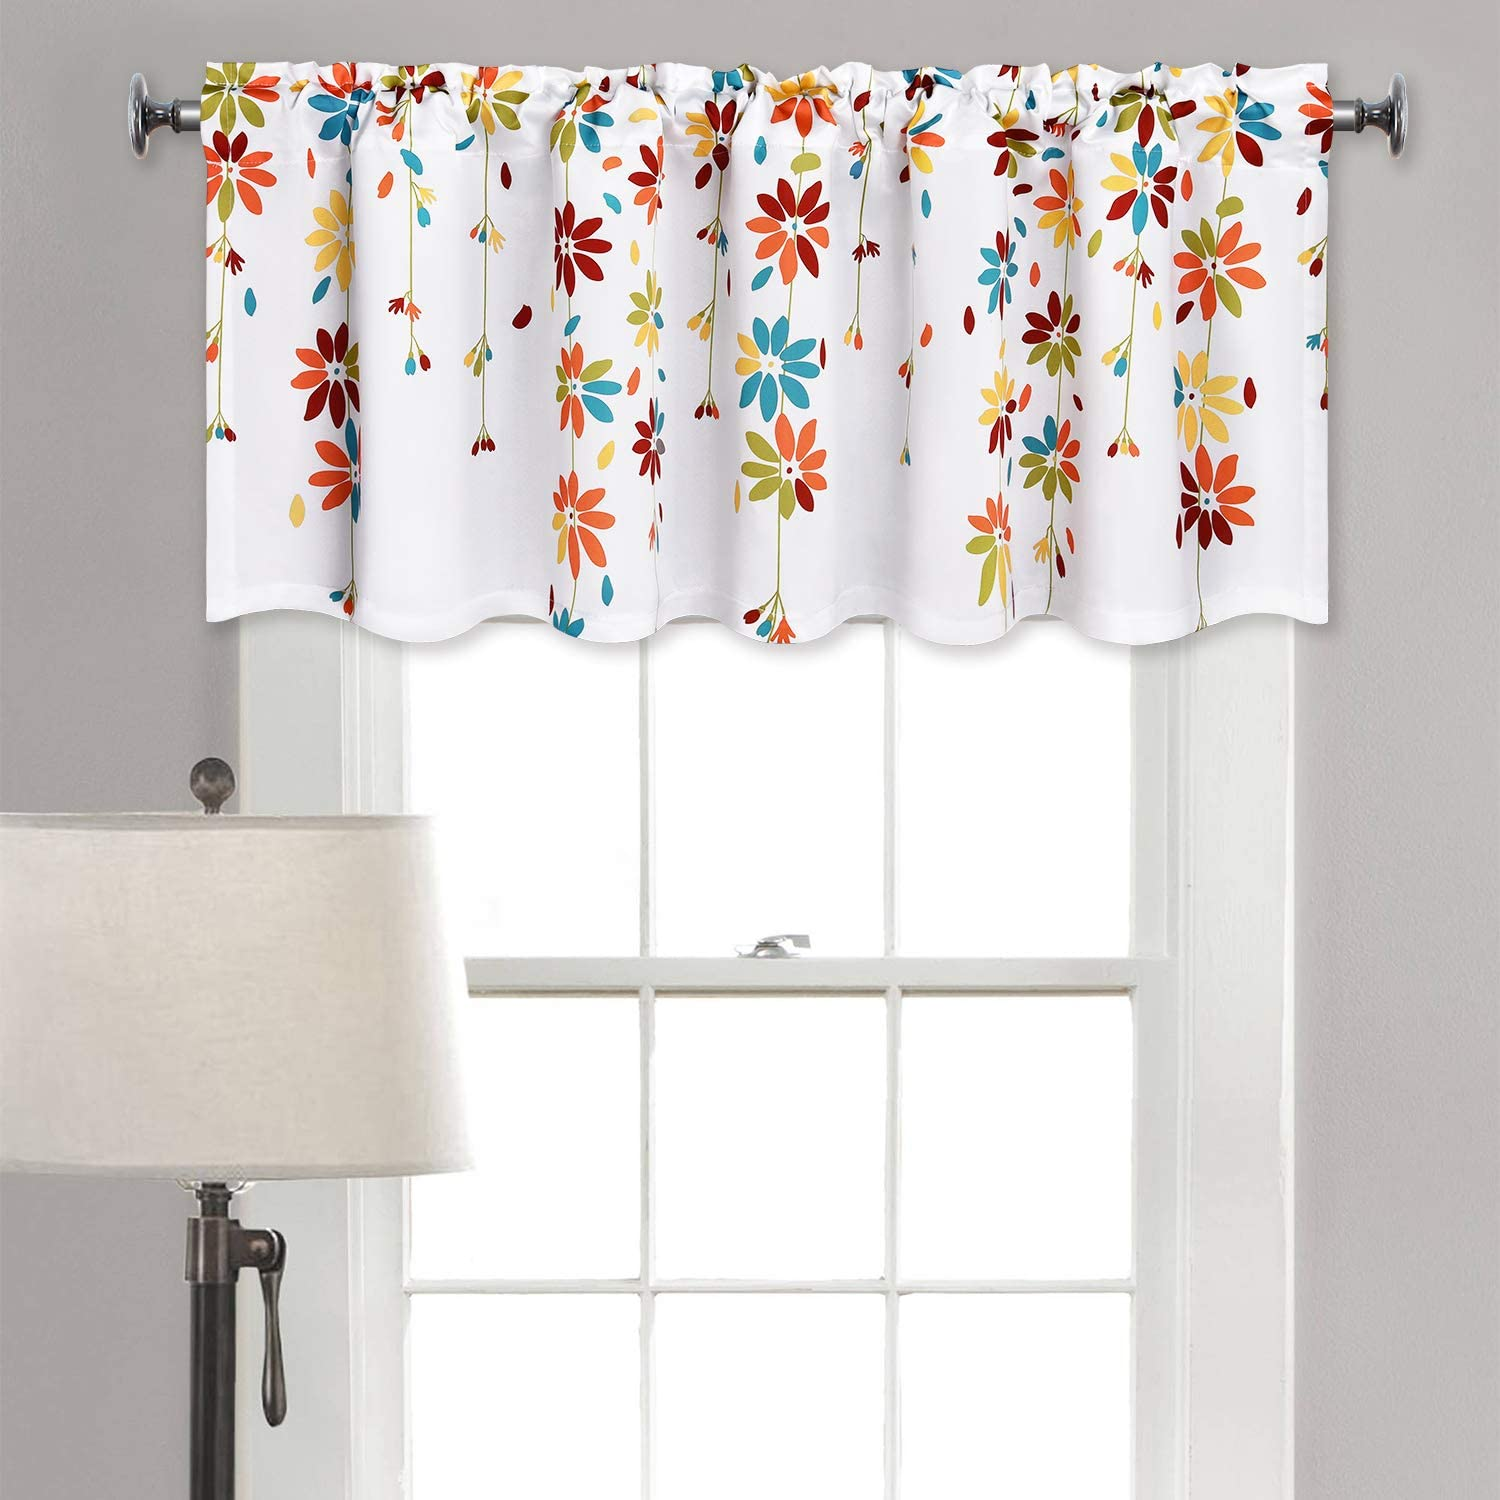 Yastouay Flowers Window Curtain Valance Floral Rod Pocket Curtains Valance for Window 52 × 18 Inches, Orange